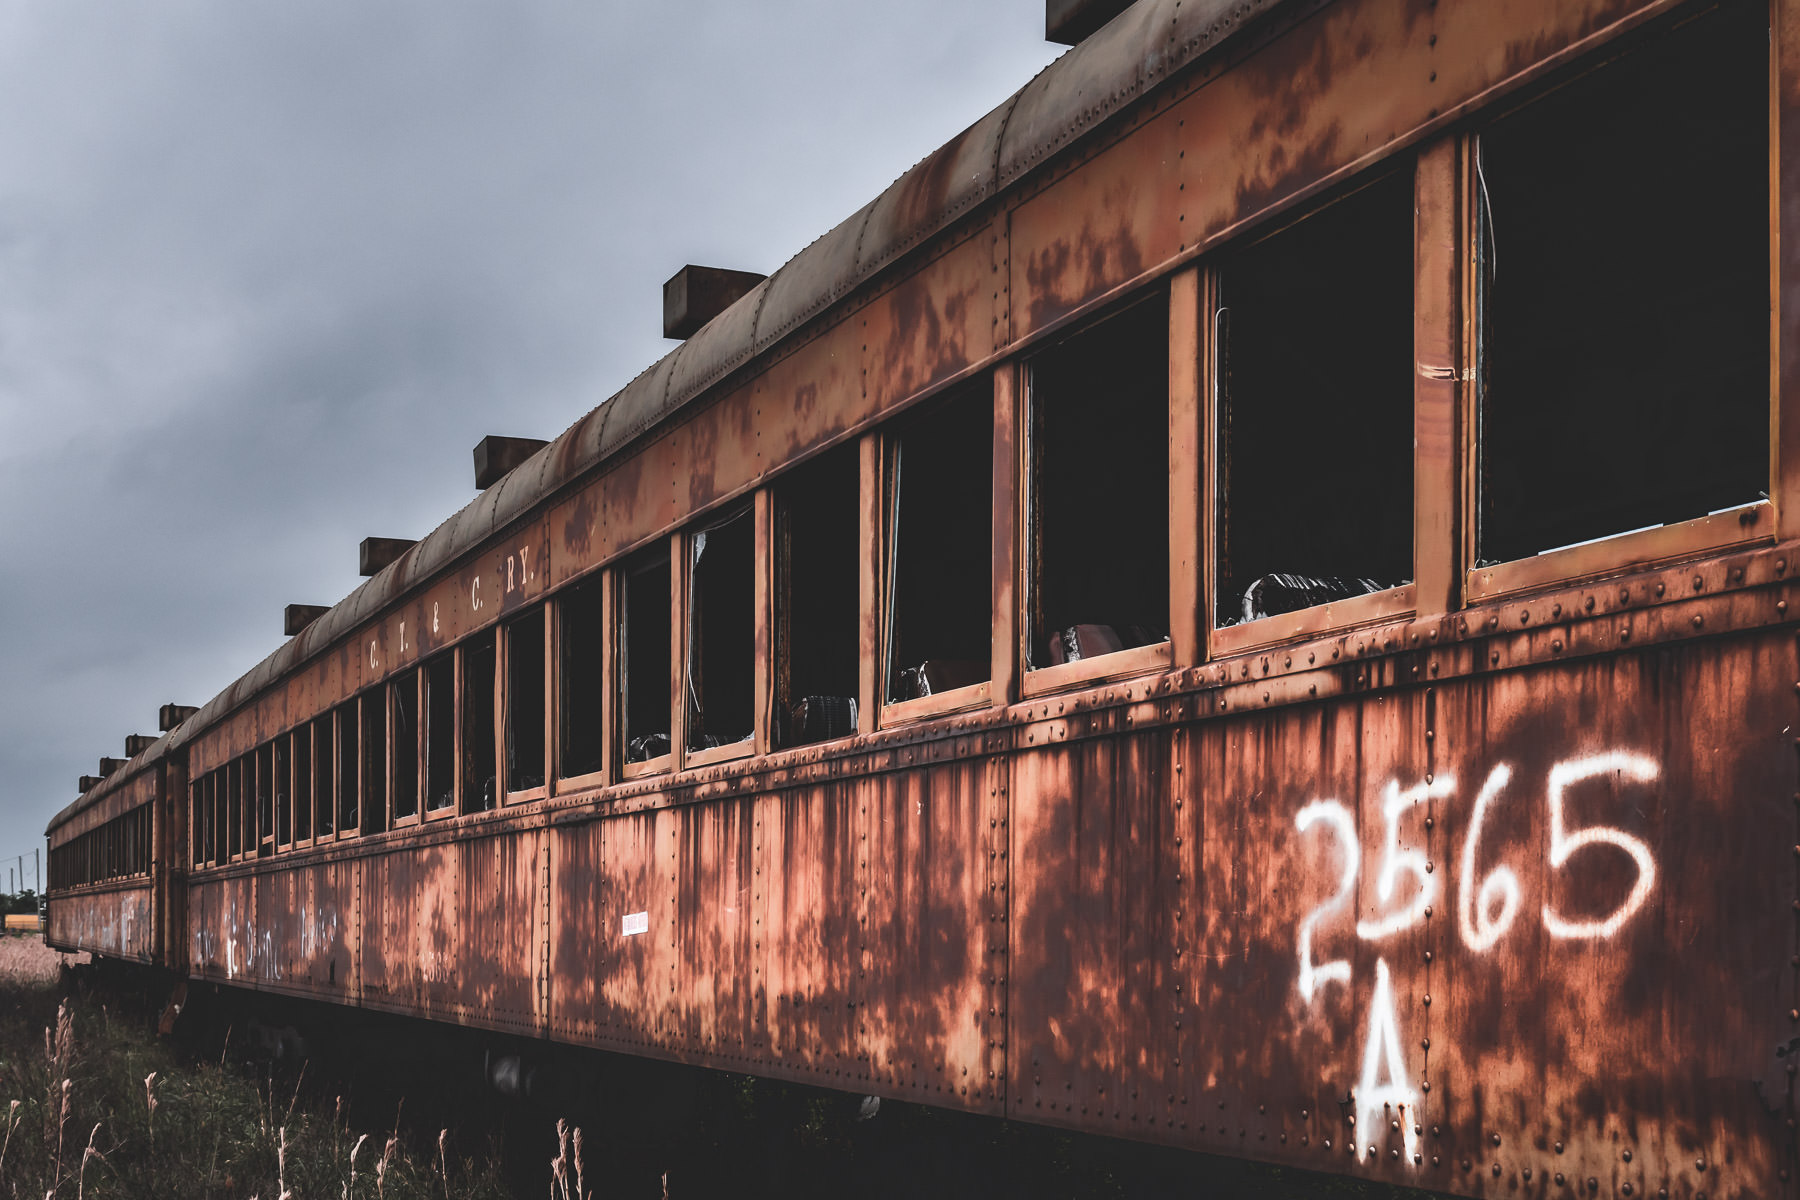 An abandoned railcar sits rotting in the Union Pacific rail yard at Galveston, Texas.